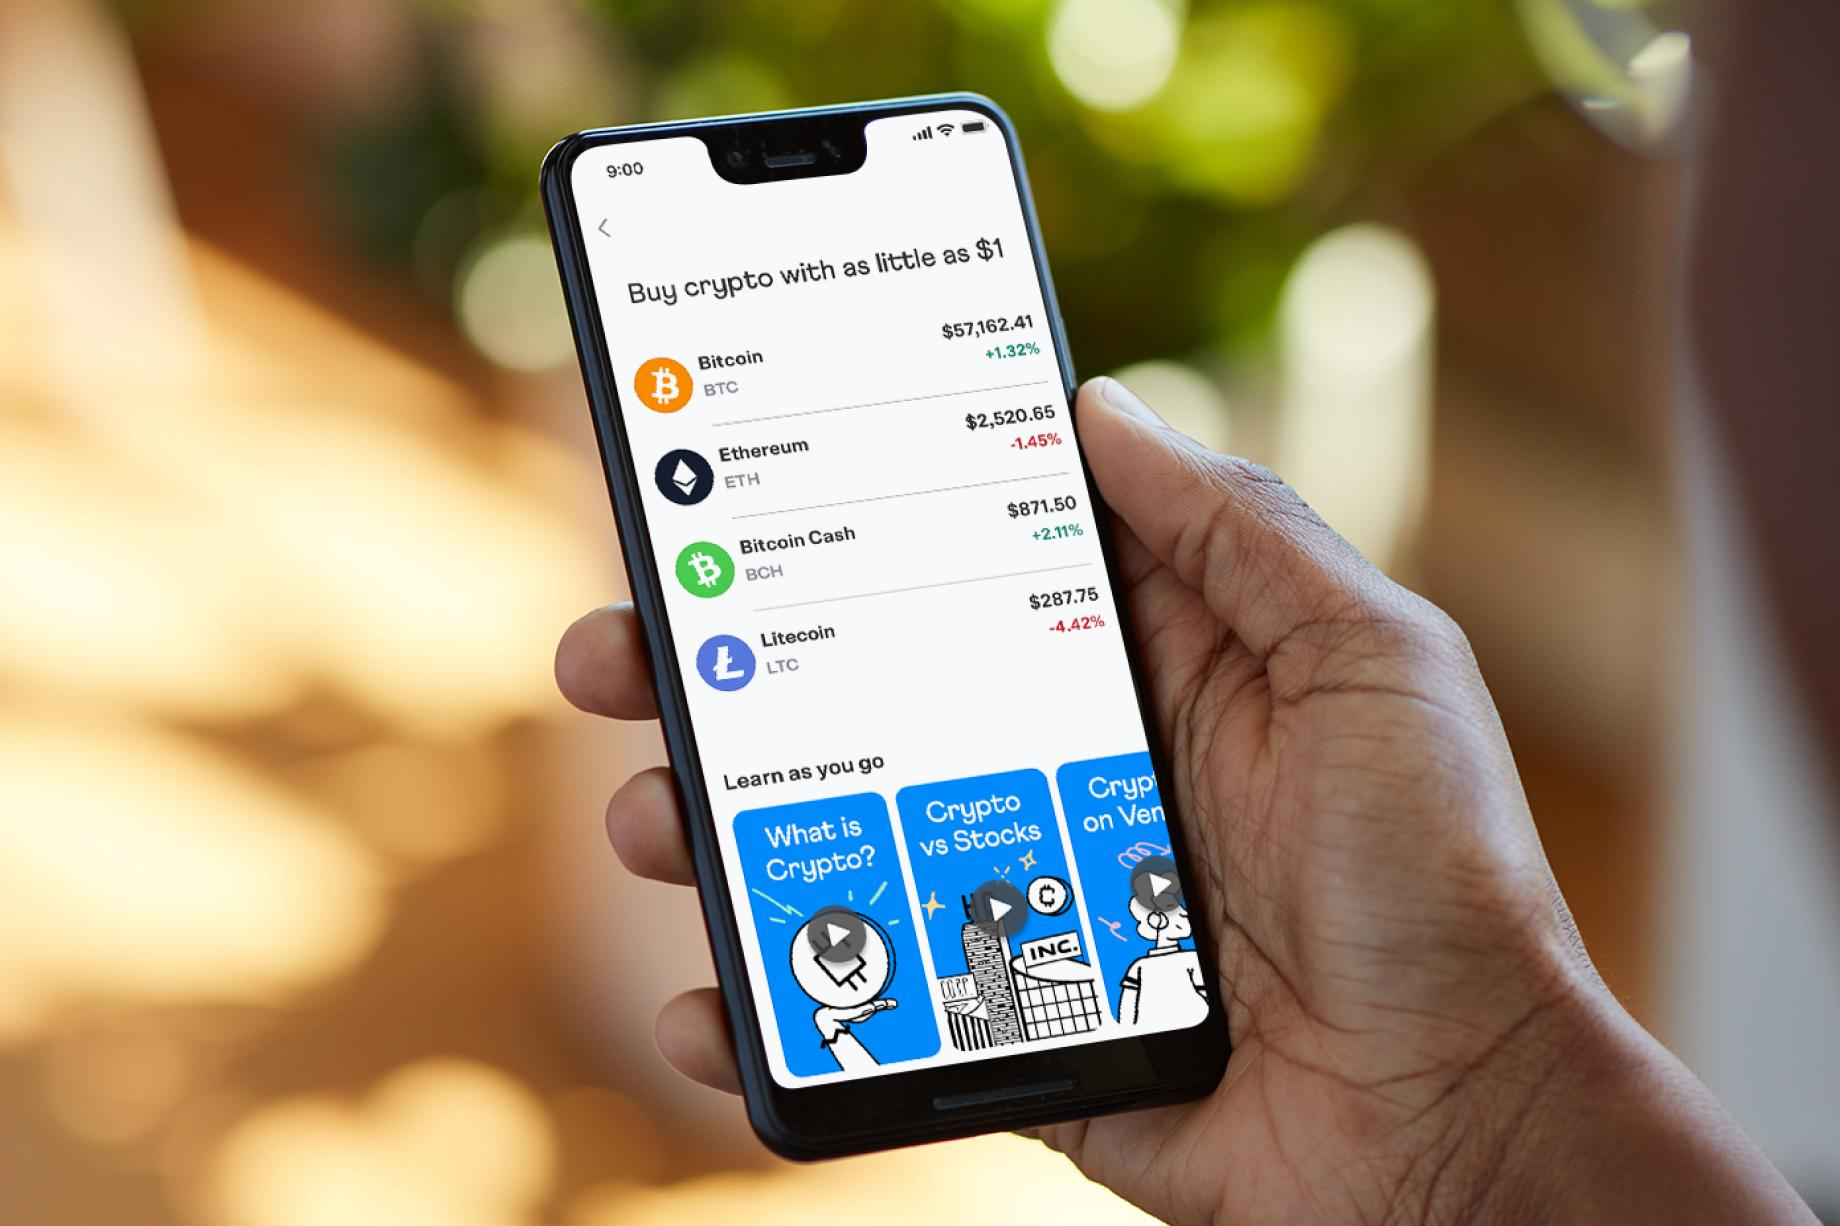 Venmo adds support for buying, holding and selling cryptocurrencies